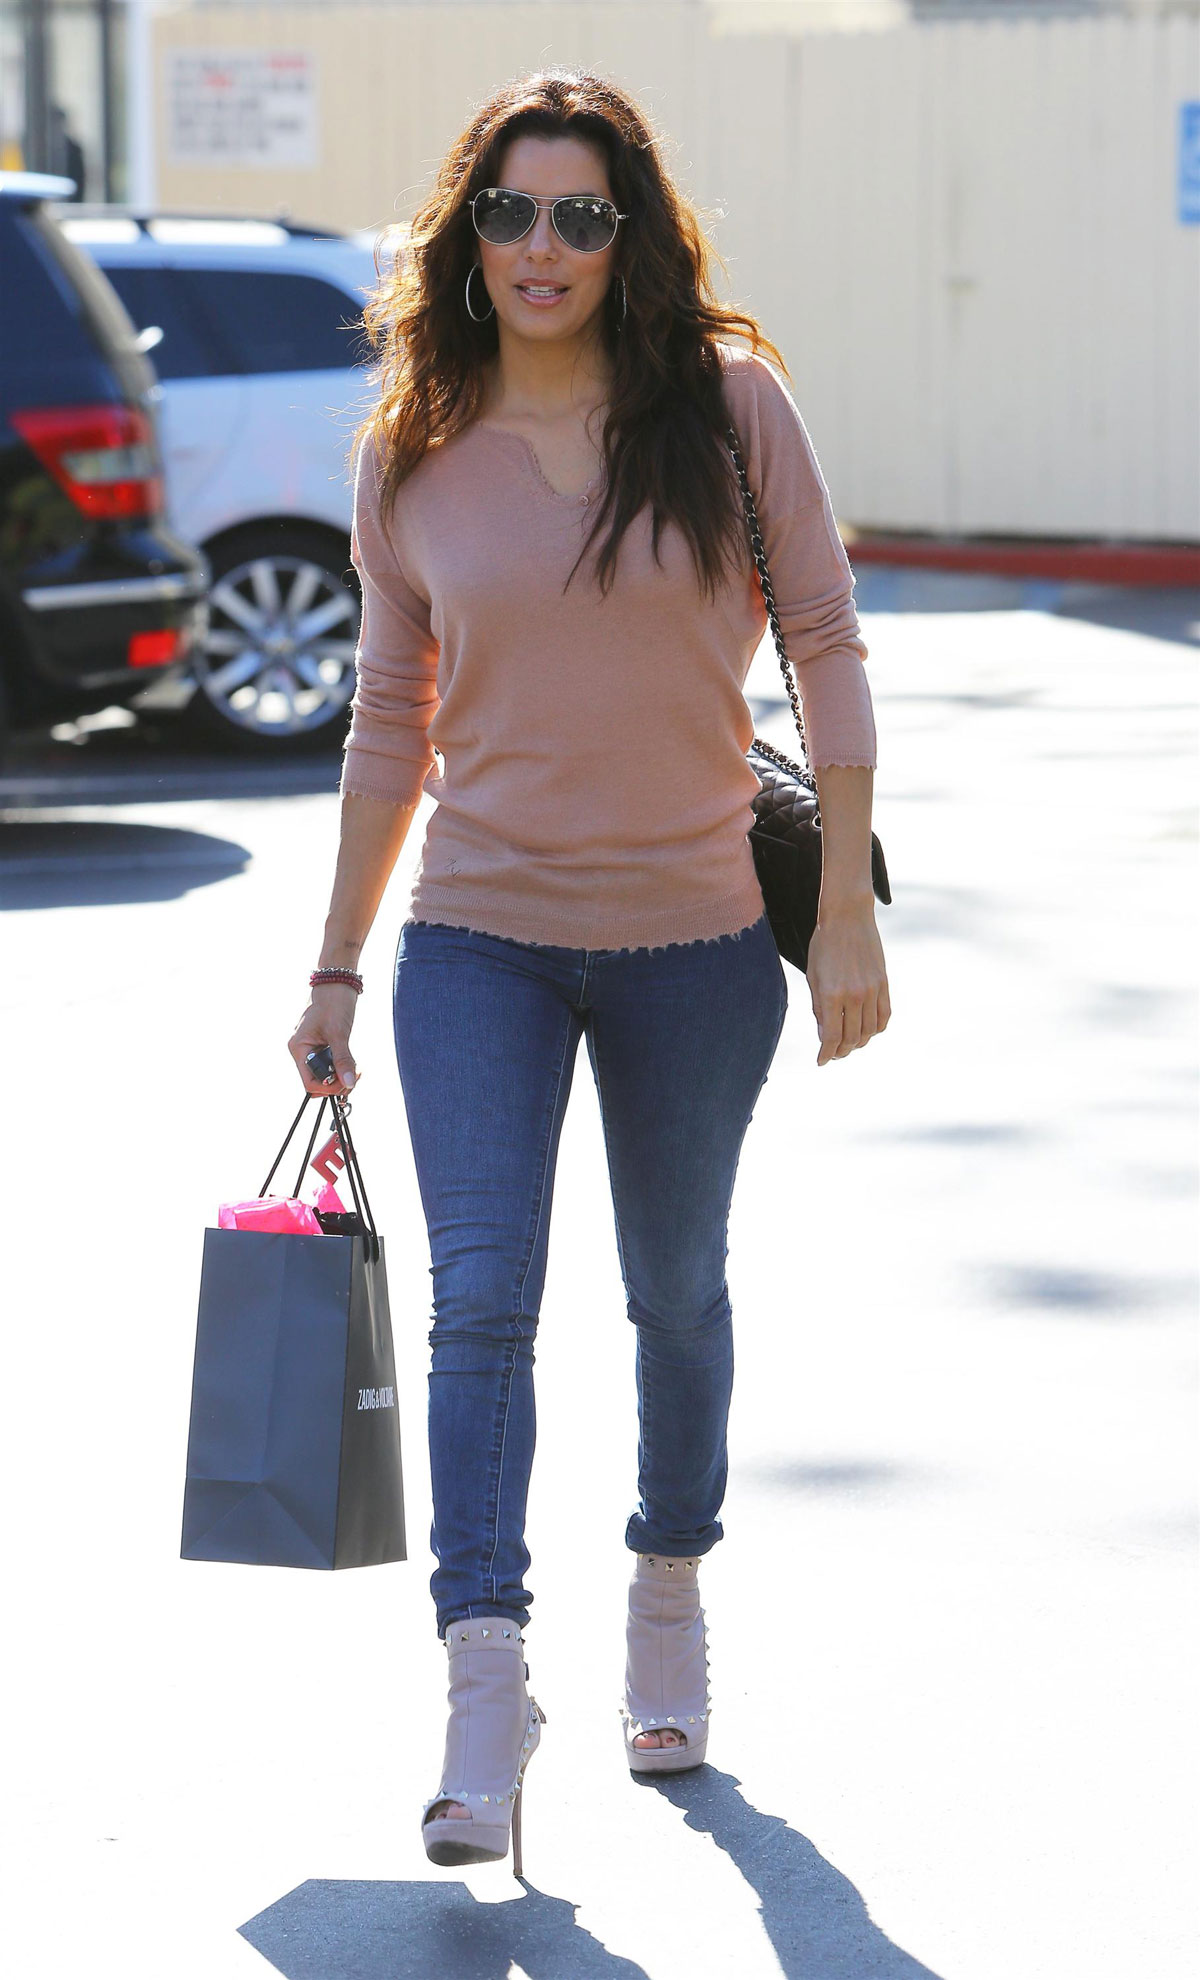 EVA LONGORIA in Tight Jeans Out an About in West Hollywood